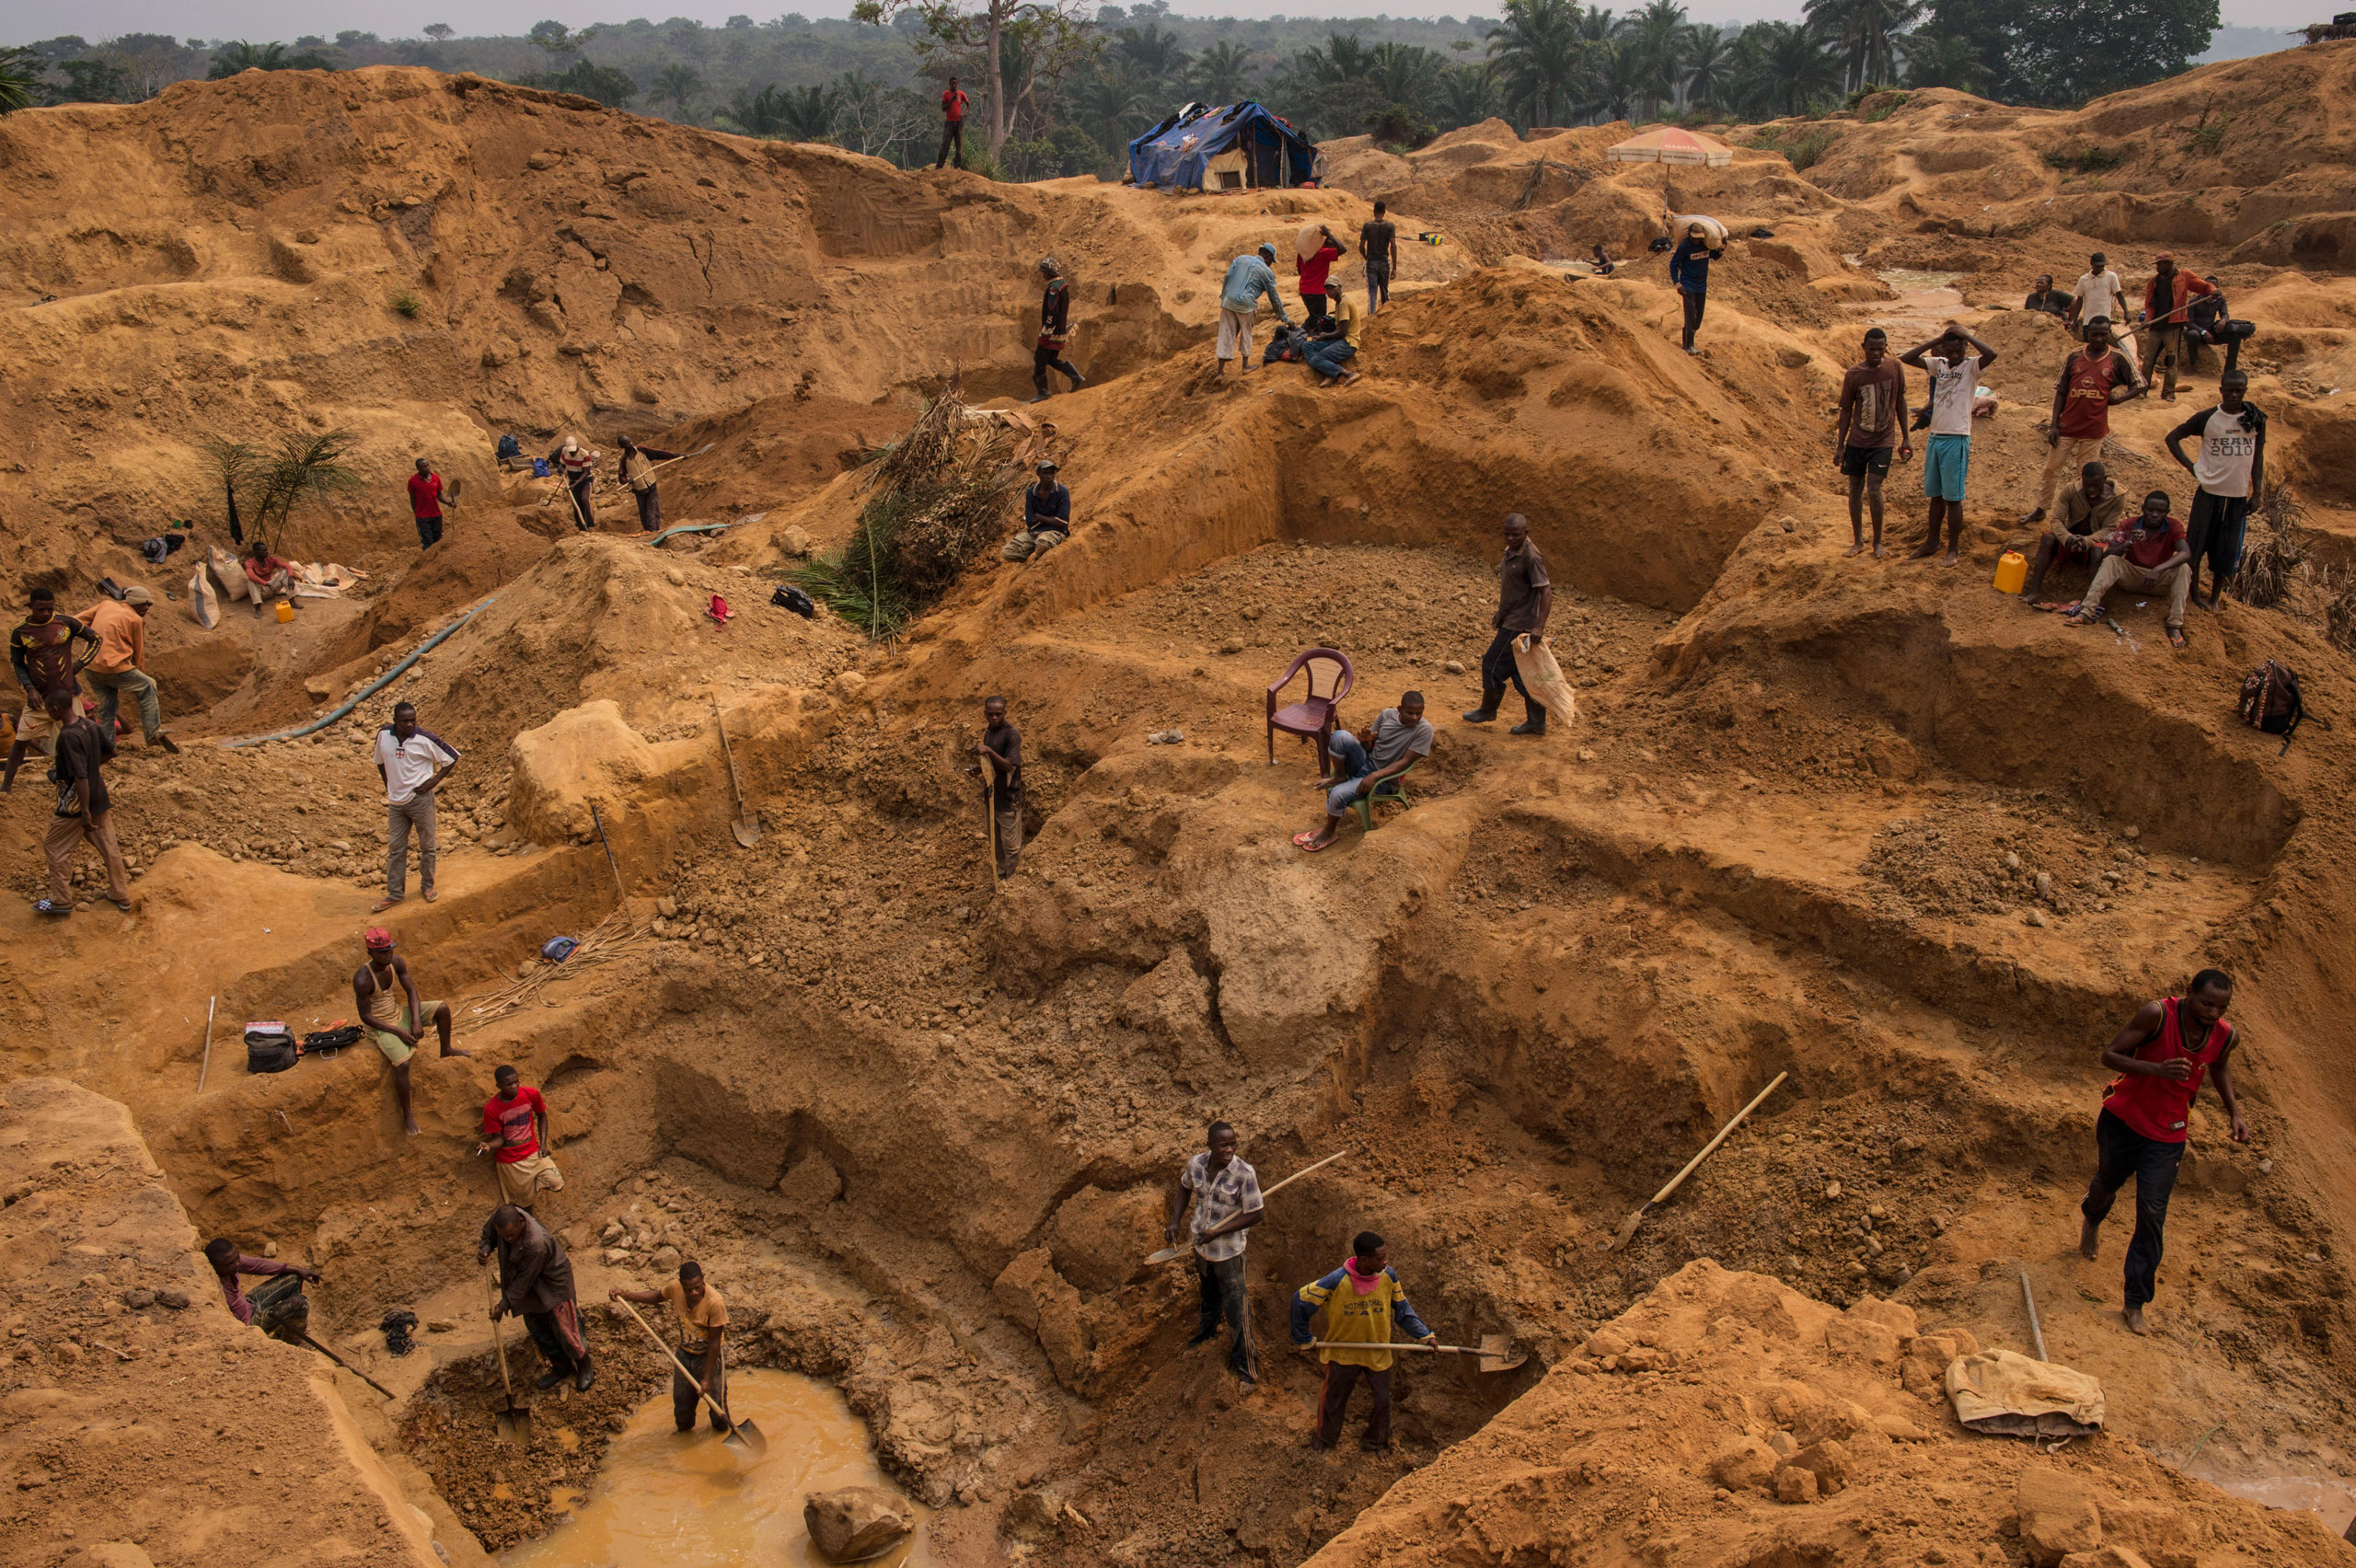 A view of an                                    artisanal mine in the southwest Democratic Republic of Congo. Aug. 9, 2015.